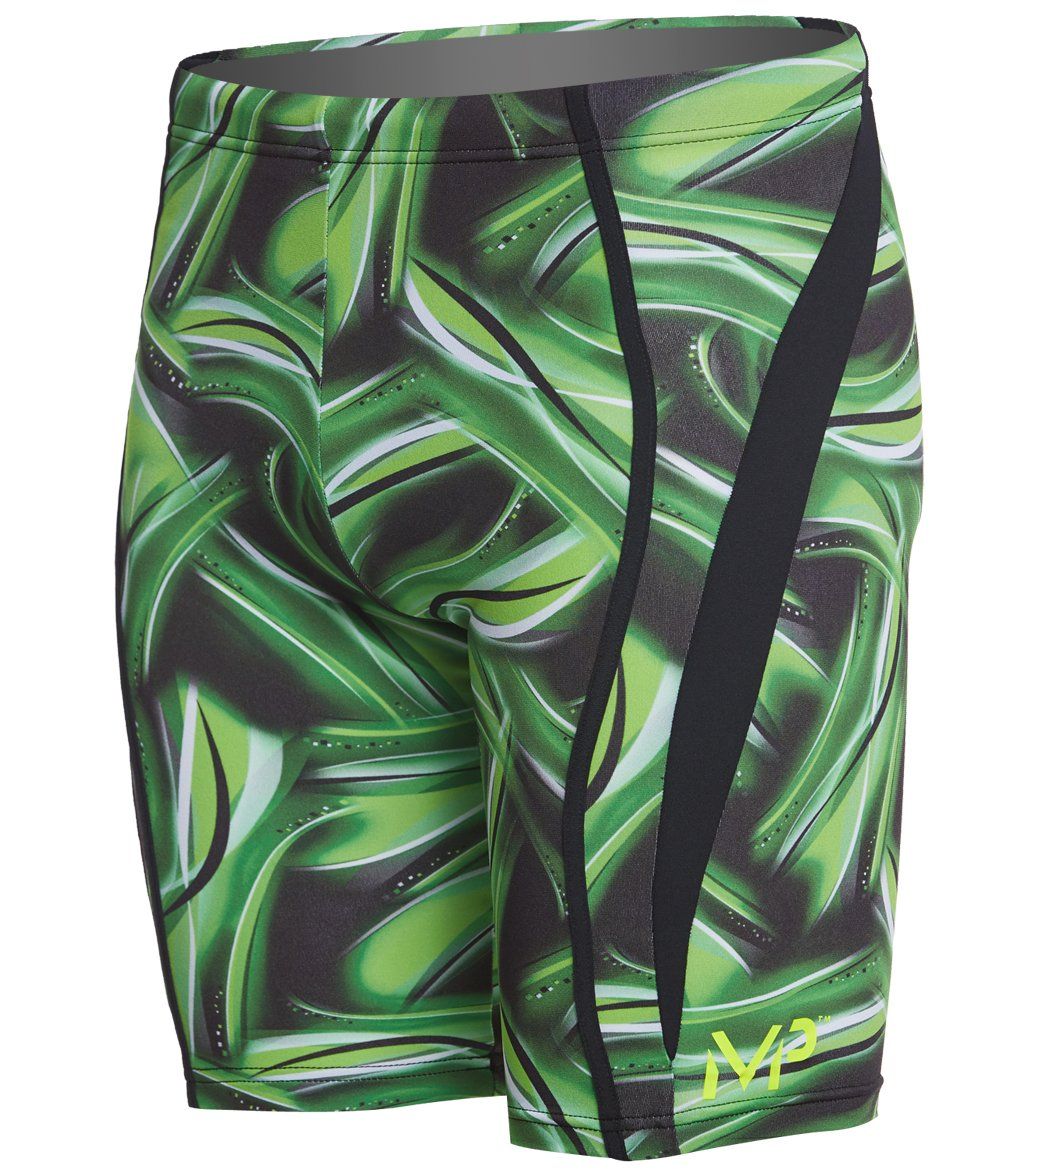 1436329850 MP Michael Phelps Men's Diablo Jammer Swimsuit at SwimOutlet.com - Free  Shipping